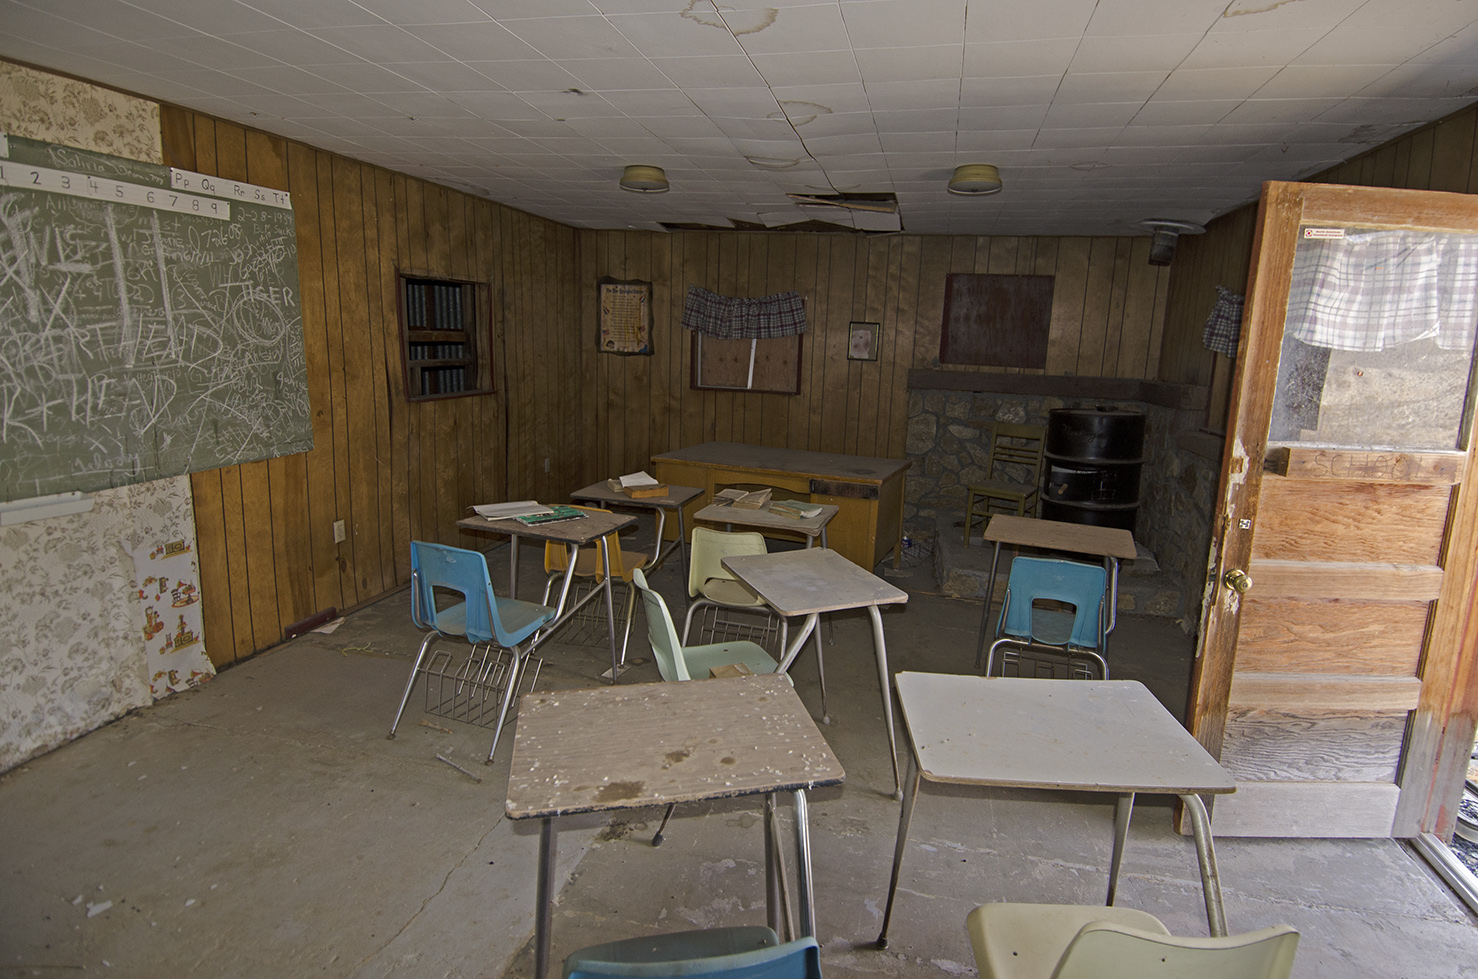 Inside the school house, a few student's desks, a chalkboard, a few pictures hanging on the wall and some bits and pieces of papers and books.